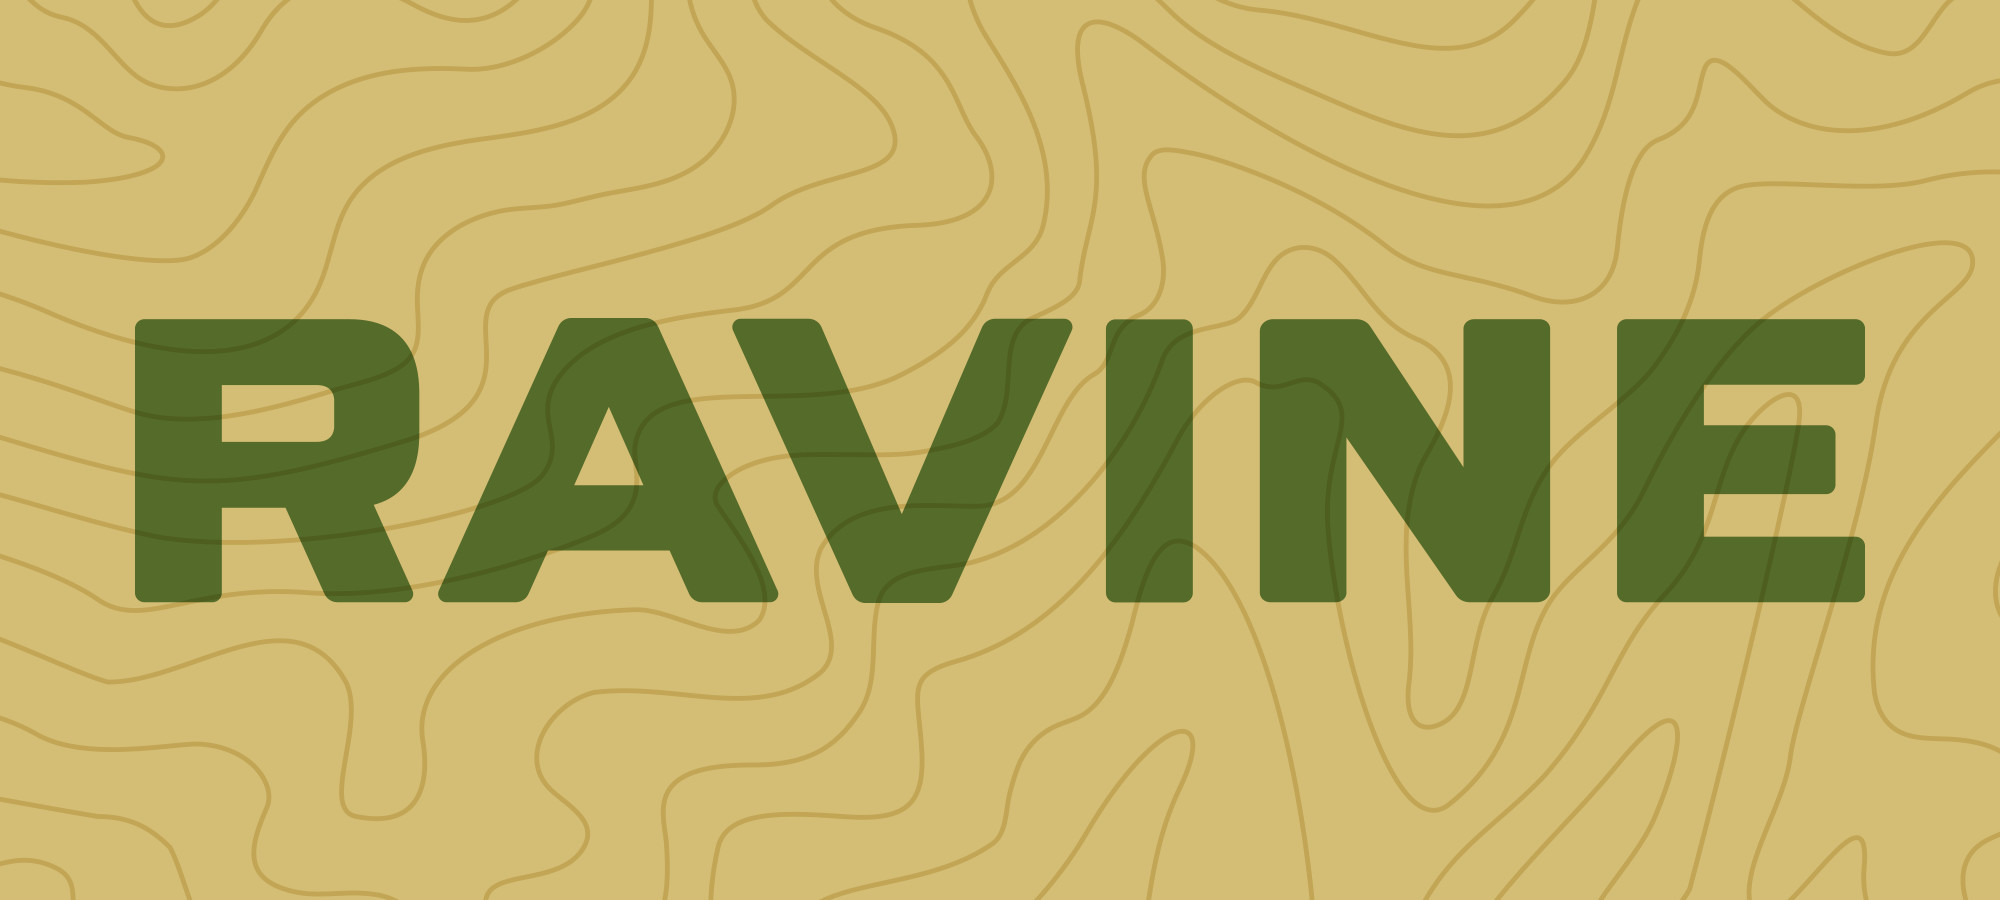 The Ravine identity features custom drawn letterforms inspired by aircraft identification numbers.